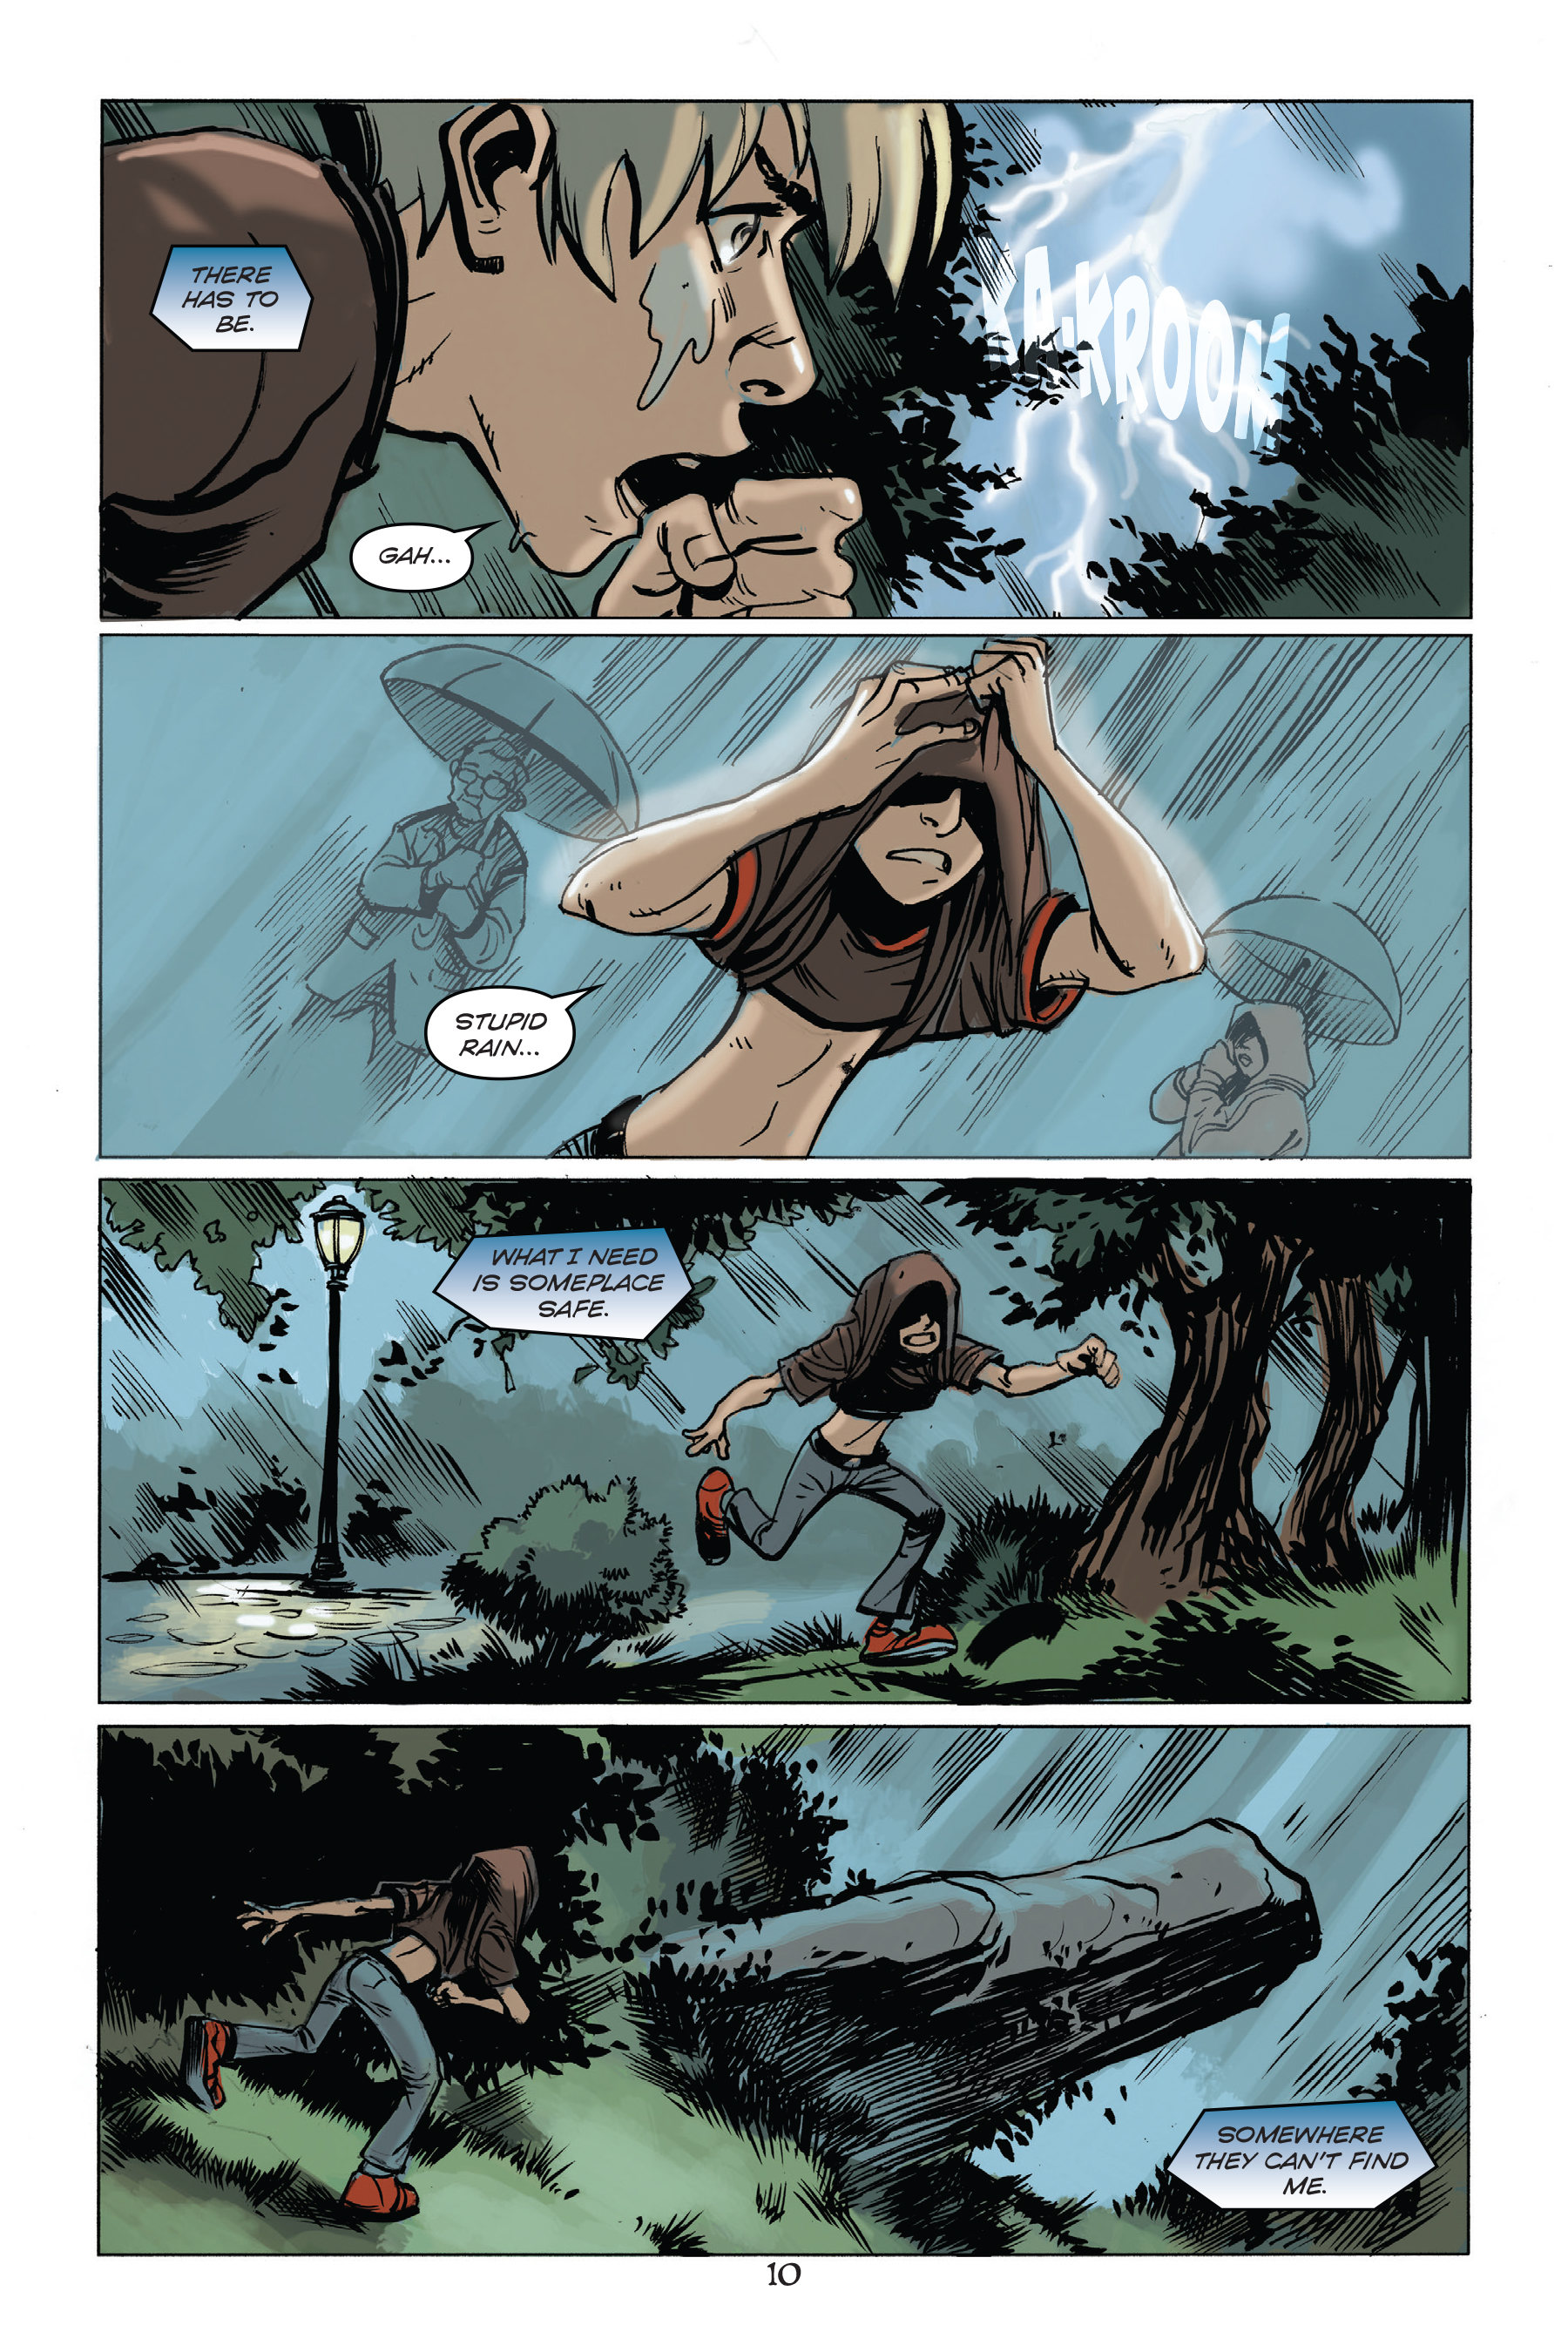 Boy Meets (Alien) World in the Excellent Scifi Adventure Comic The Only Living Boy